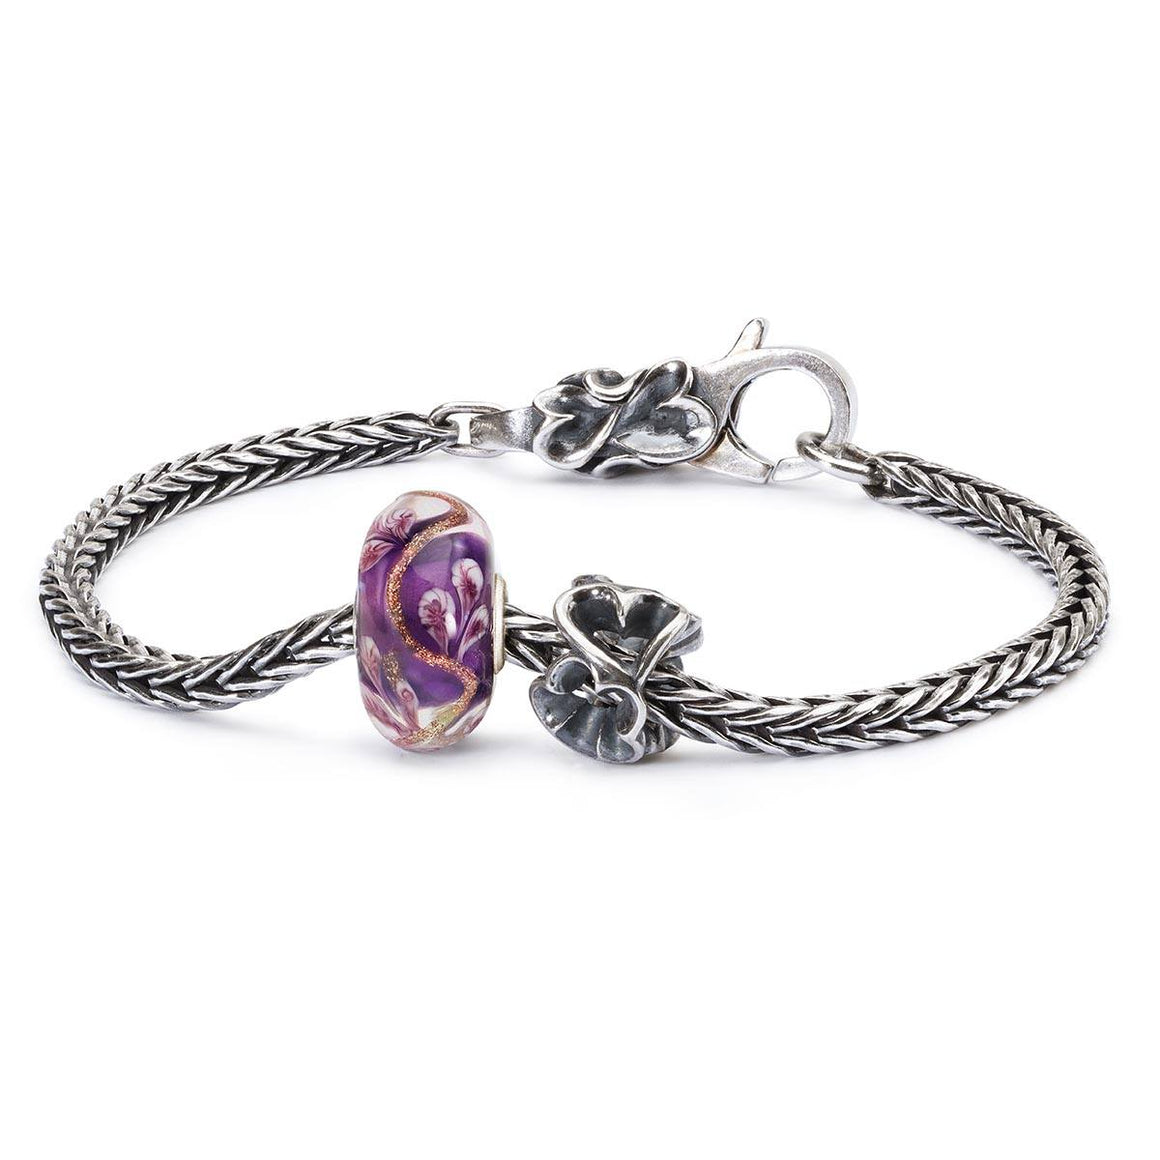 Trollbeads ready-made modern charm bracelet with purple and silver bead on